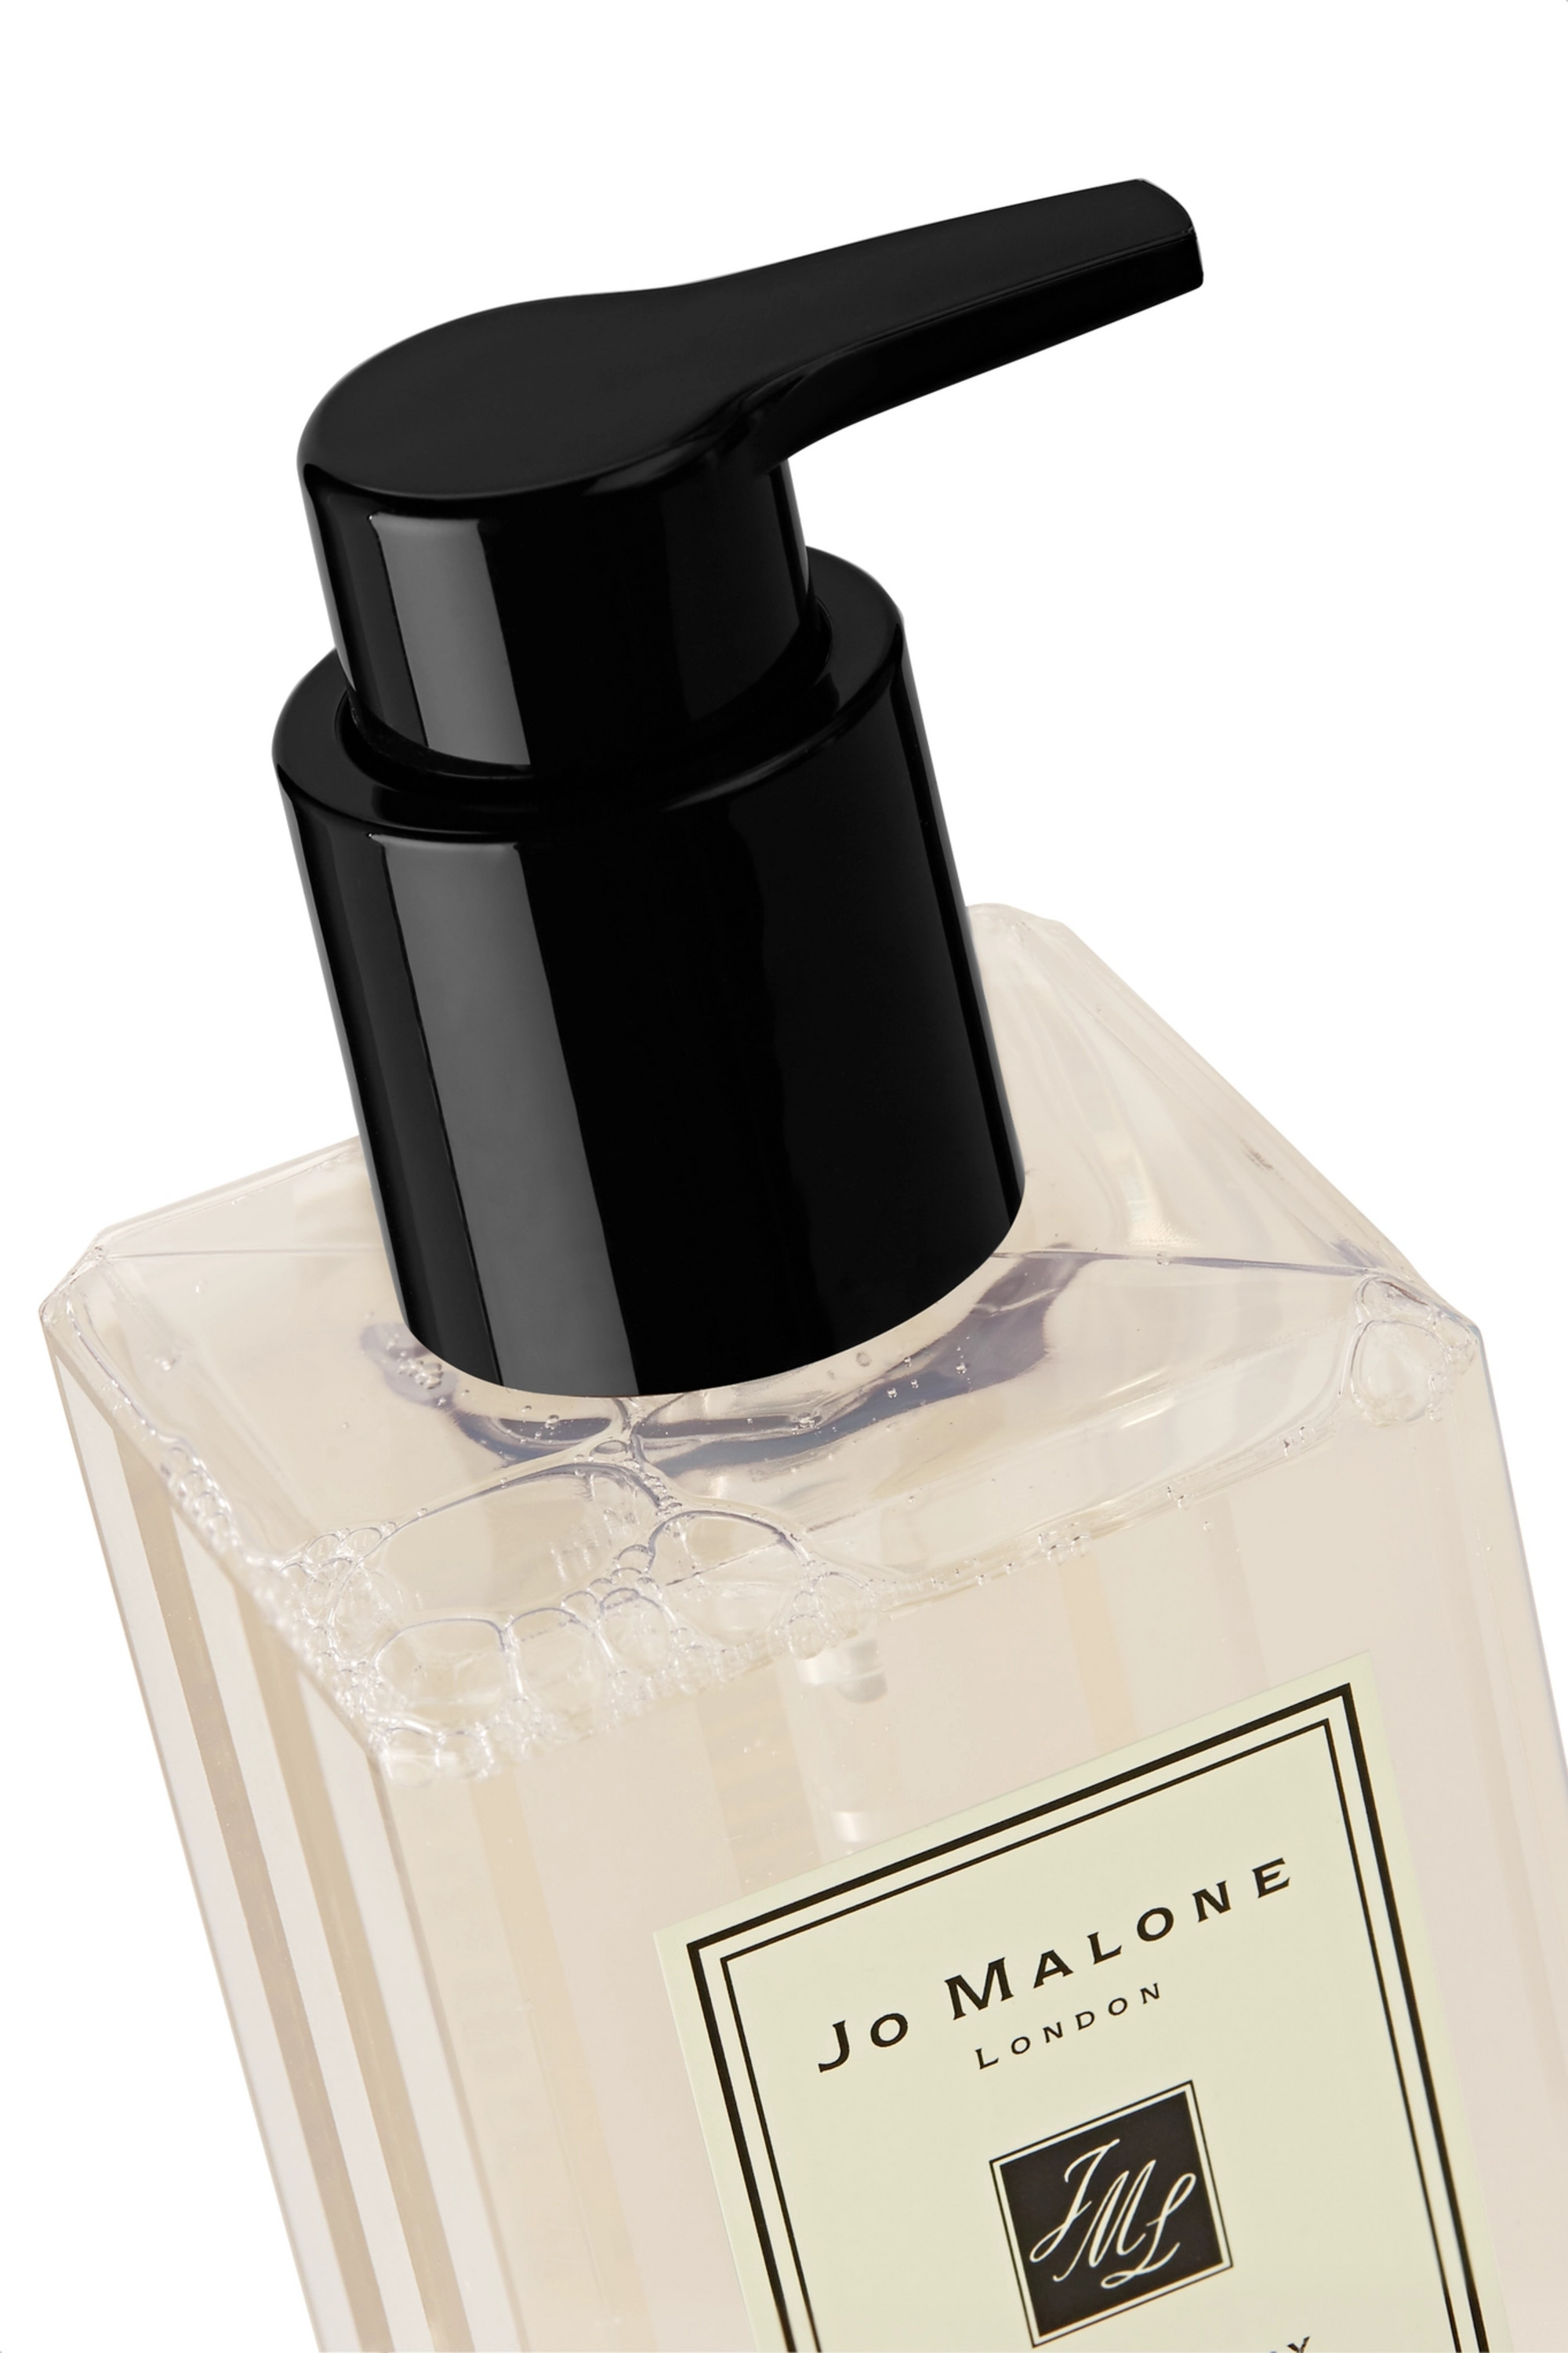 JO MALONE LONDON Peony & Blush Suede Body & Hand Wash, 250ml